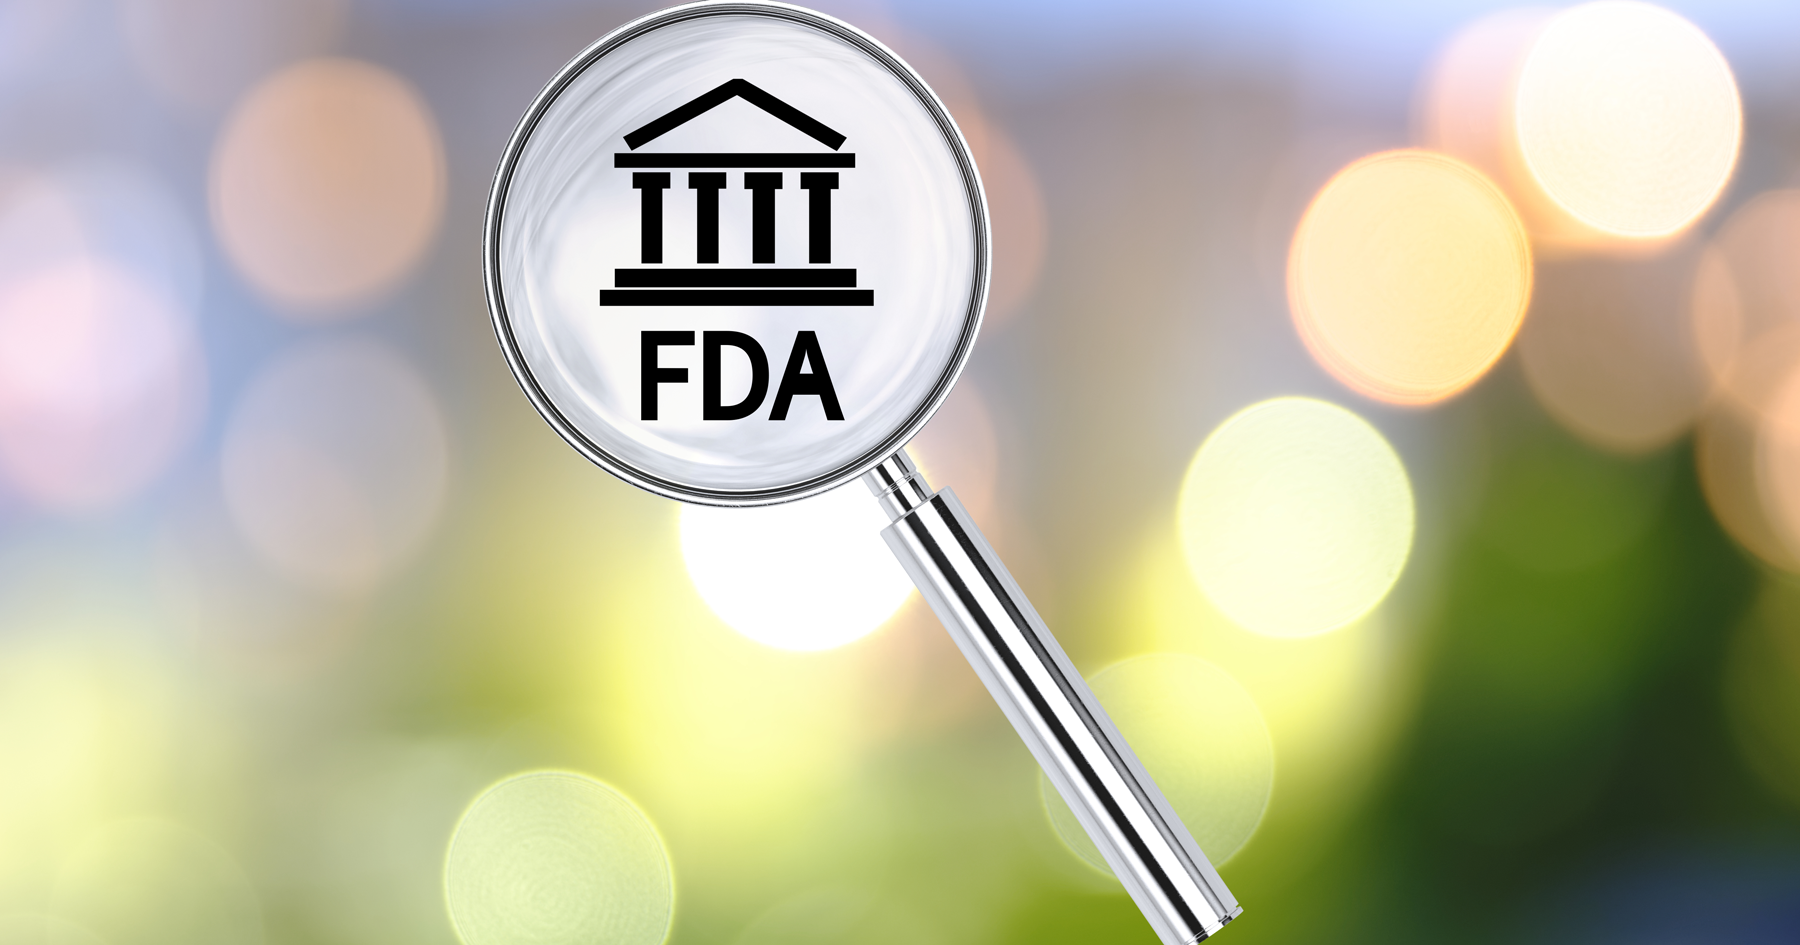 fda magnifying glass